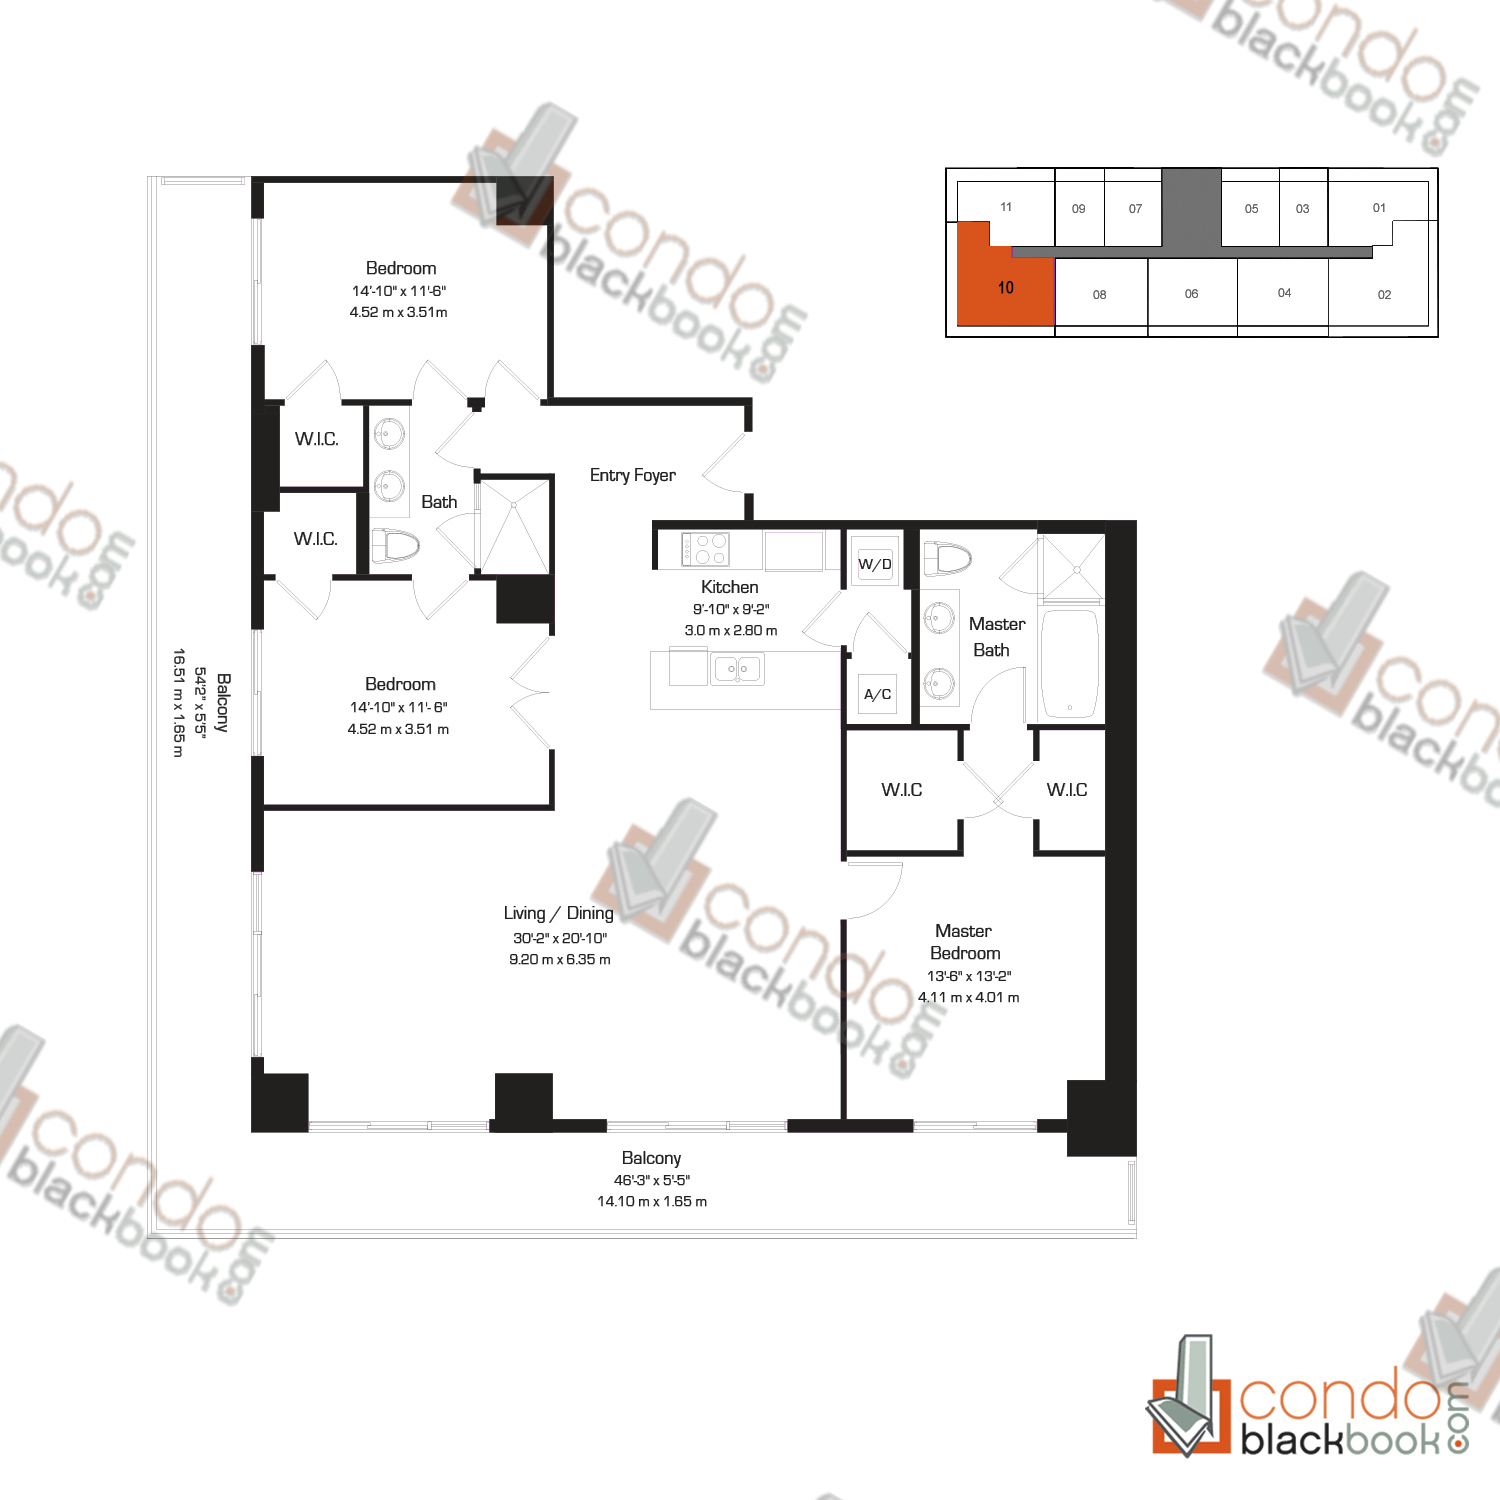 Floor plan for 50 Biscayne Downtown Miami Miami, model AA and O, line 01, 14, 1/2+Den bedrooms, 1,108 sq ft